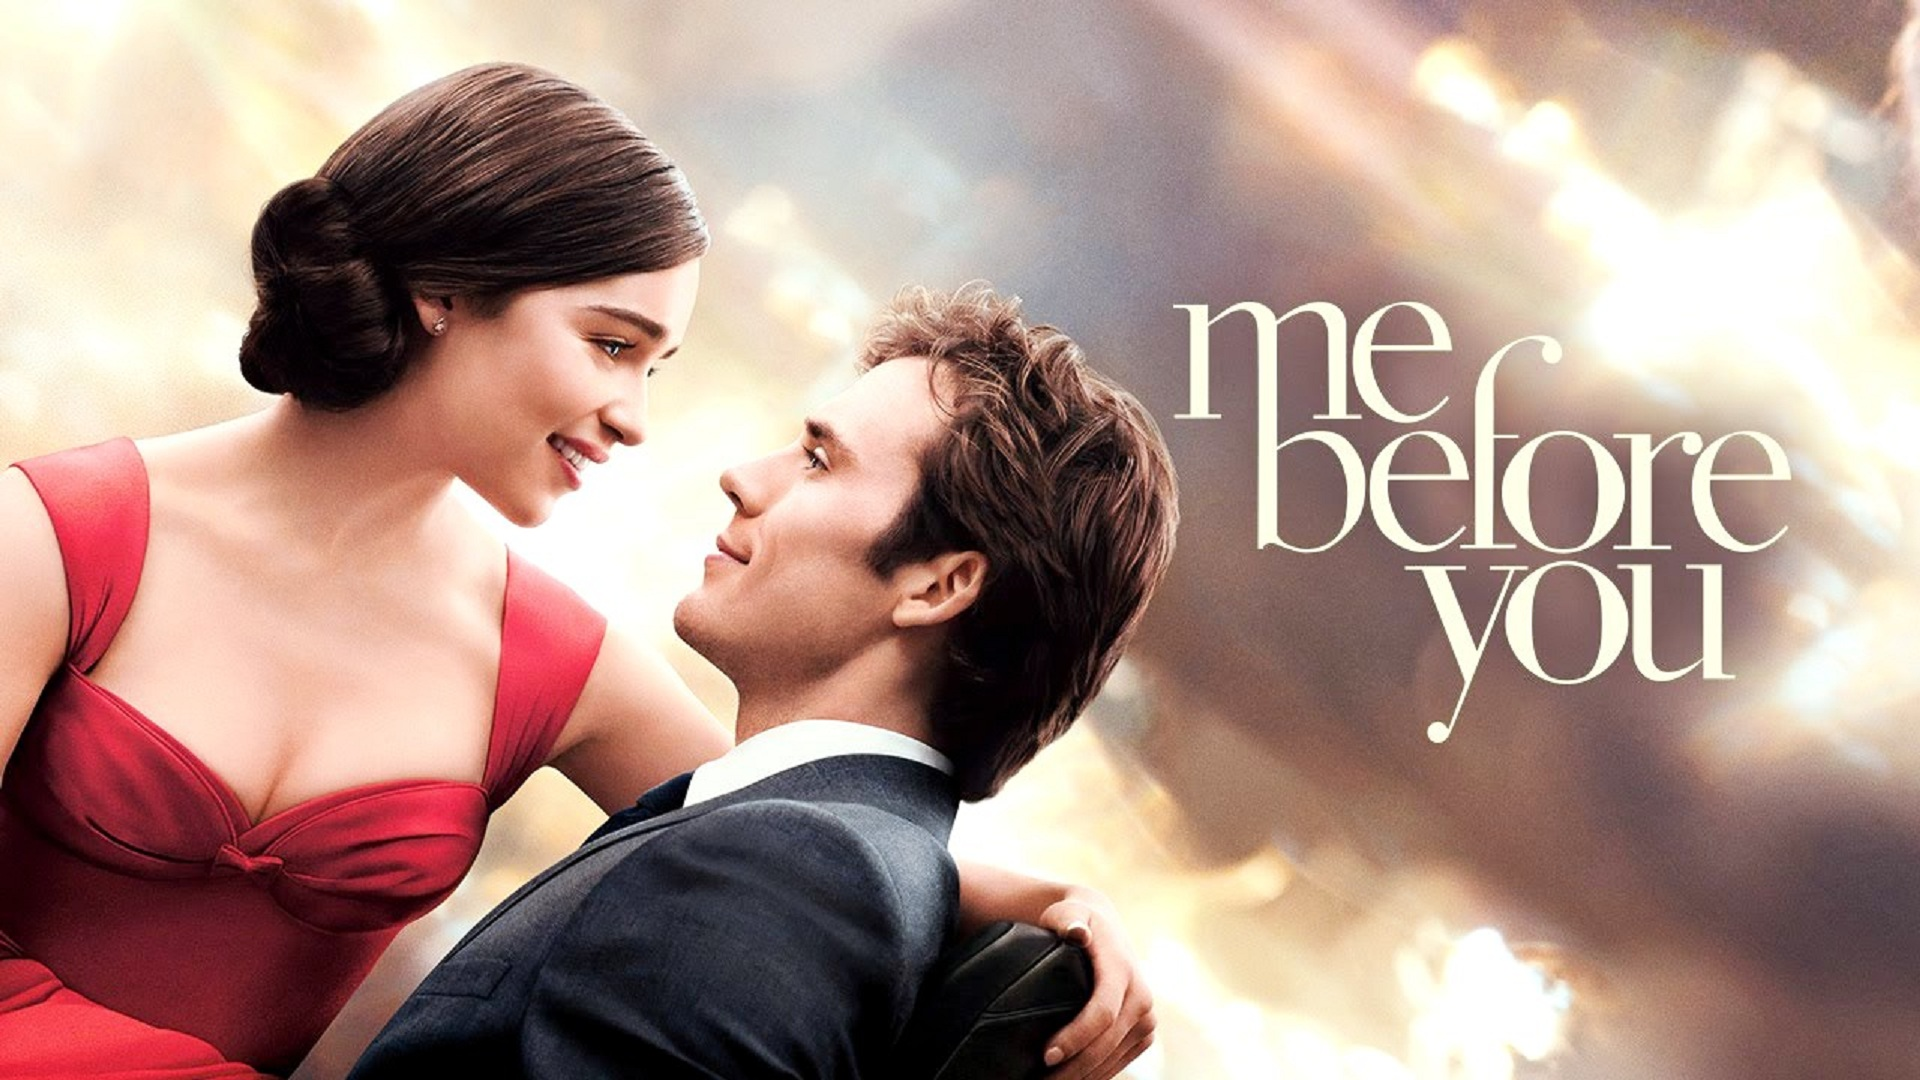 Me Before You Wallpaper Hd - Me Before You Hd , HD Wallpaper & Backgrounds